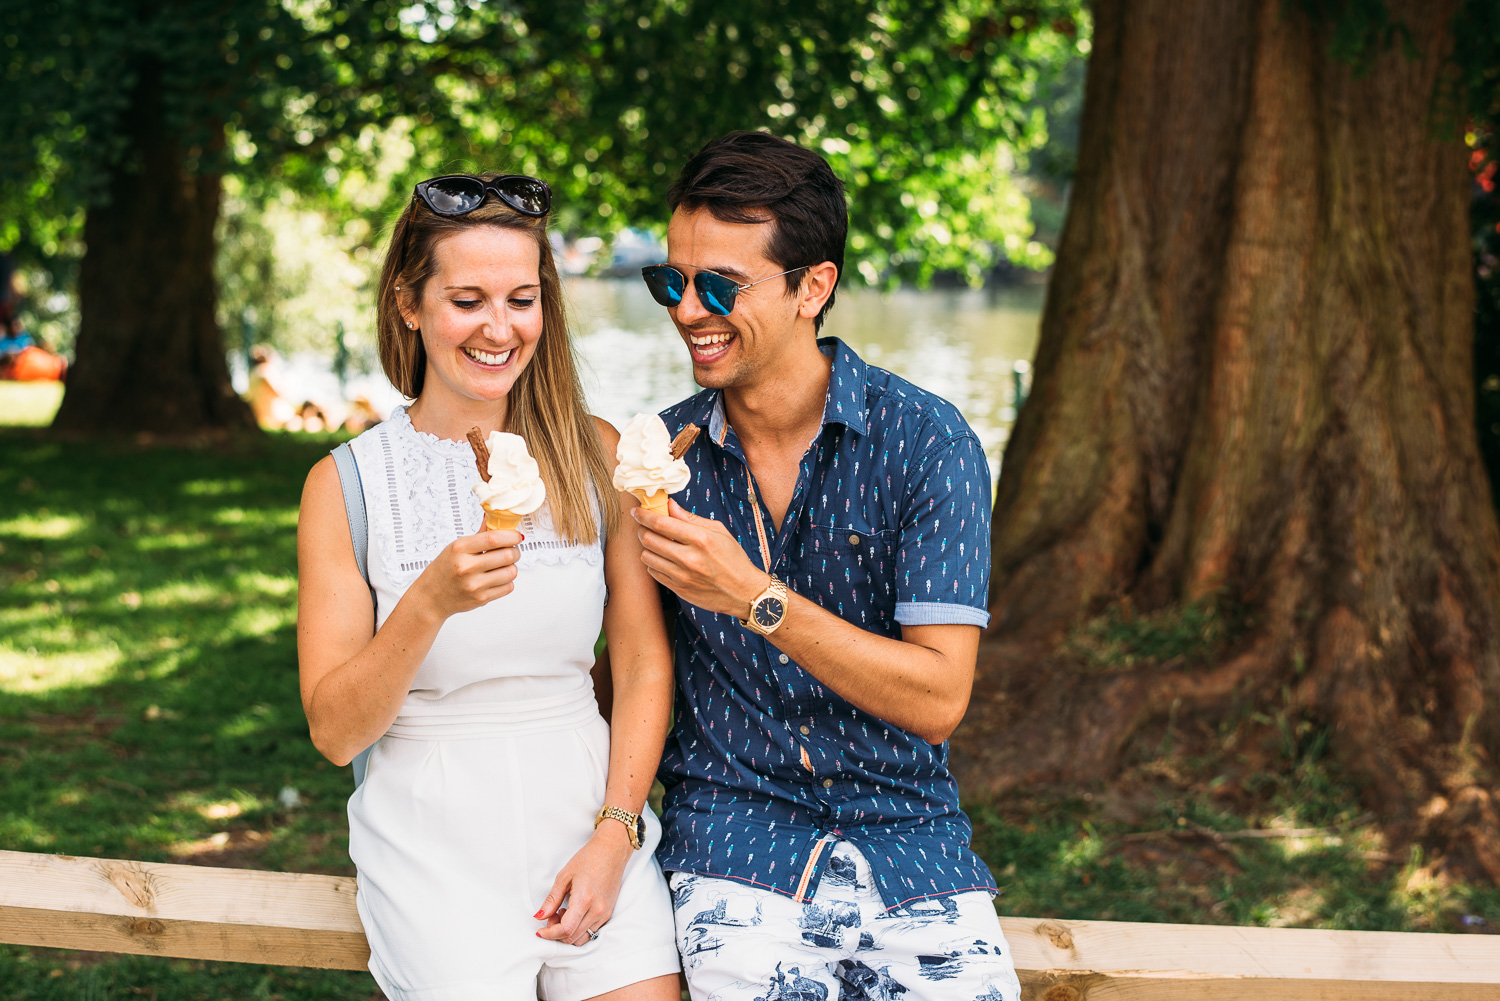 summery-richmond-park-engagement-shoot-19.jpg